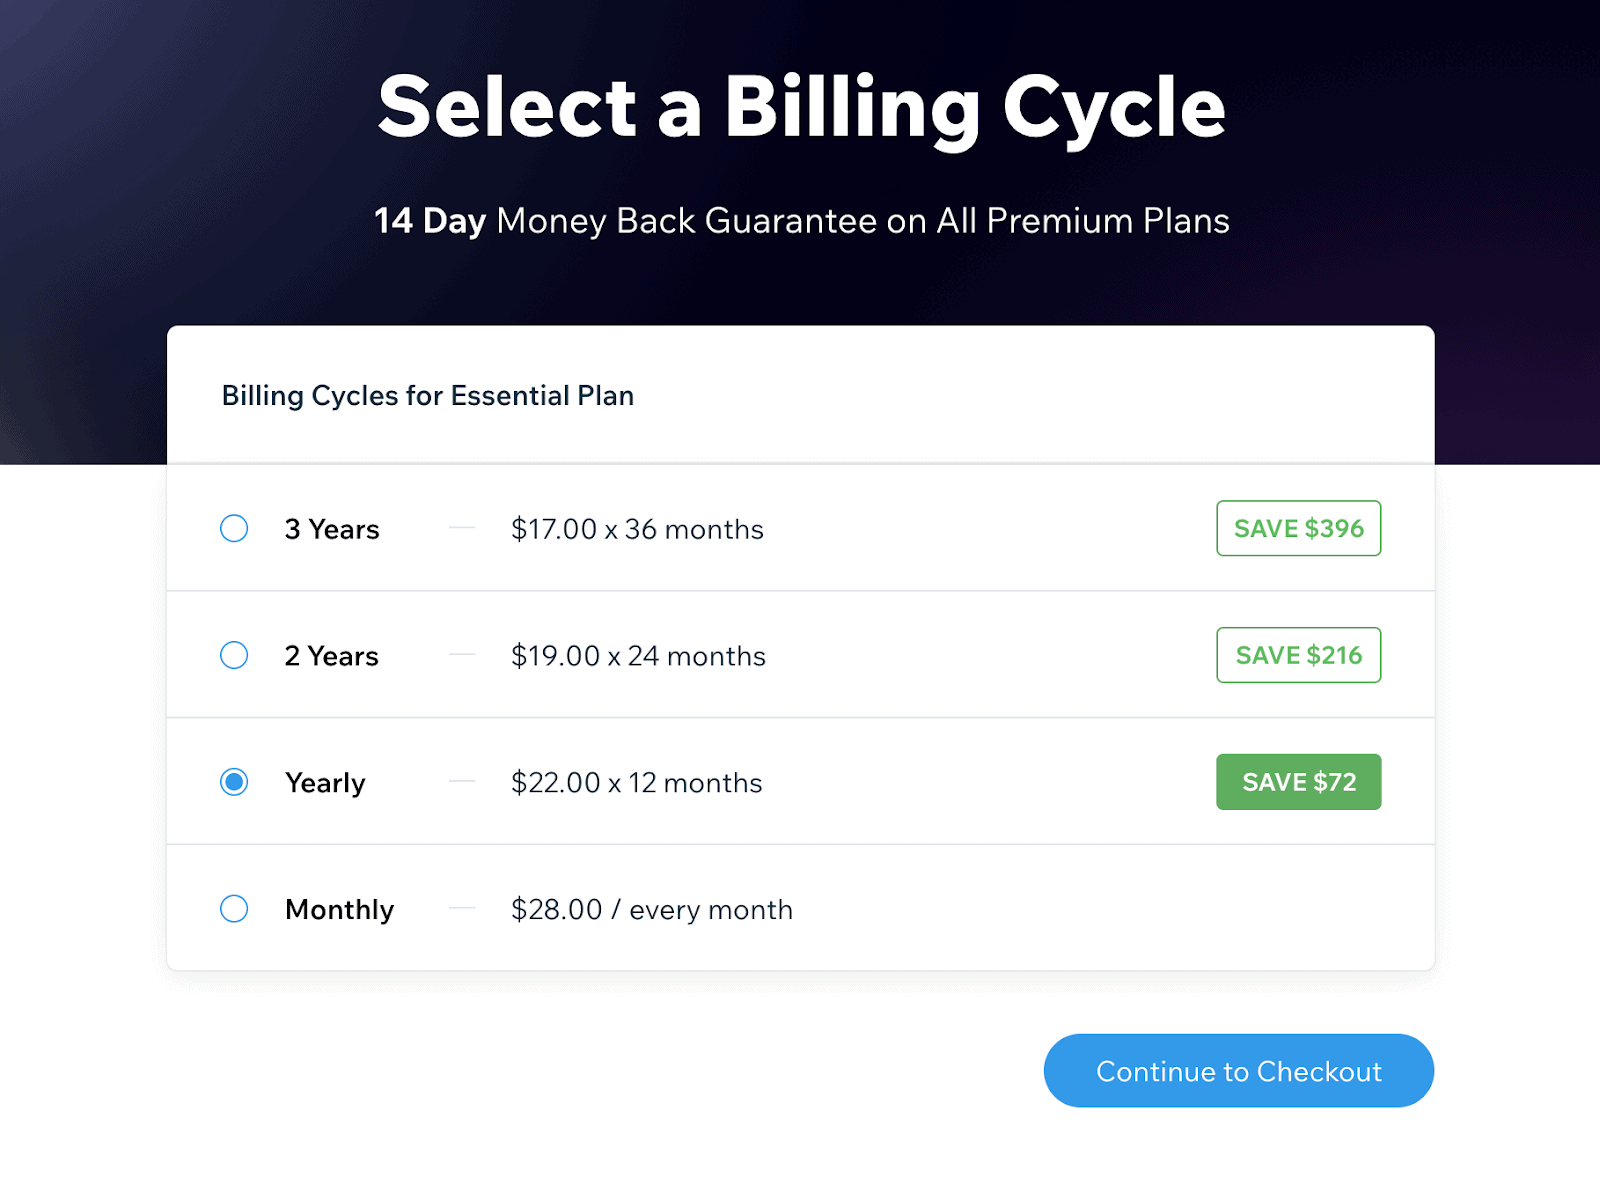 You get more value from Editor X paying yearly over month to month.